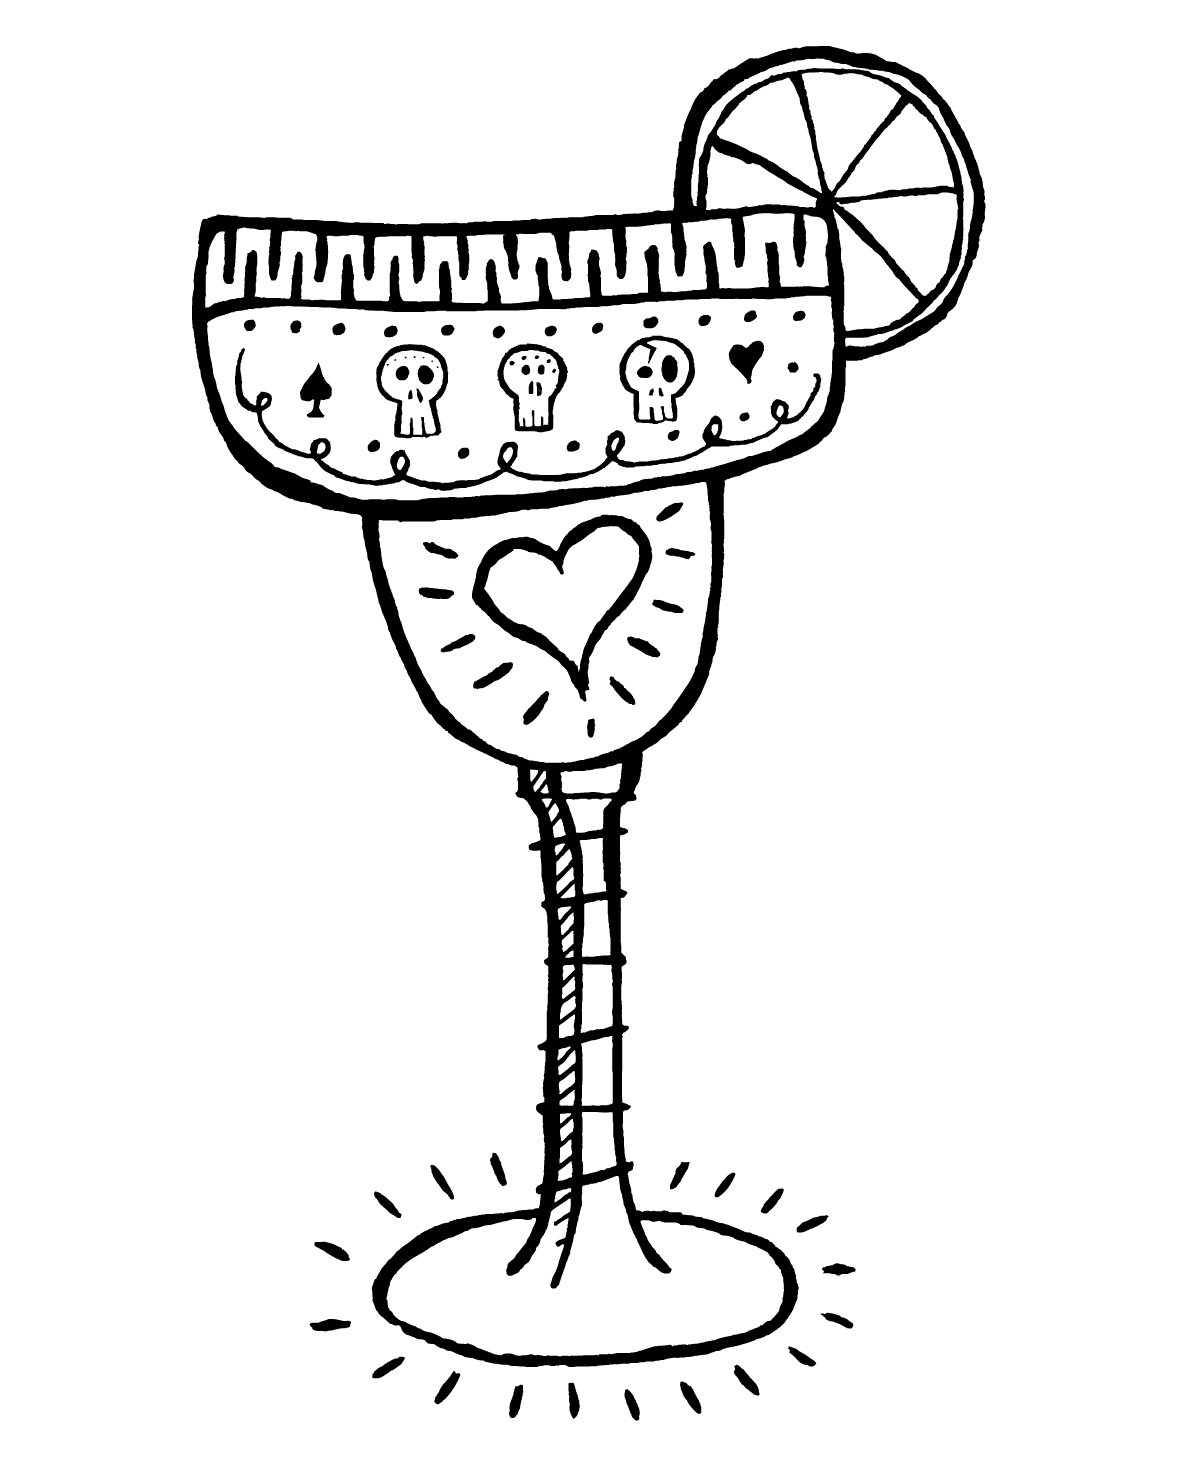 Free Printable Margarita Coloring Page for Adults #dayofthedead #diadelosmuertos #cincodemayo #coloringpage #freeprintable #margarita